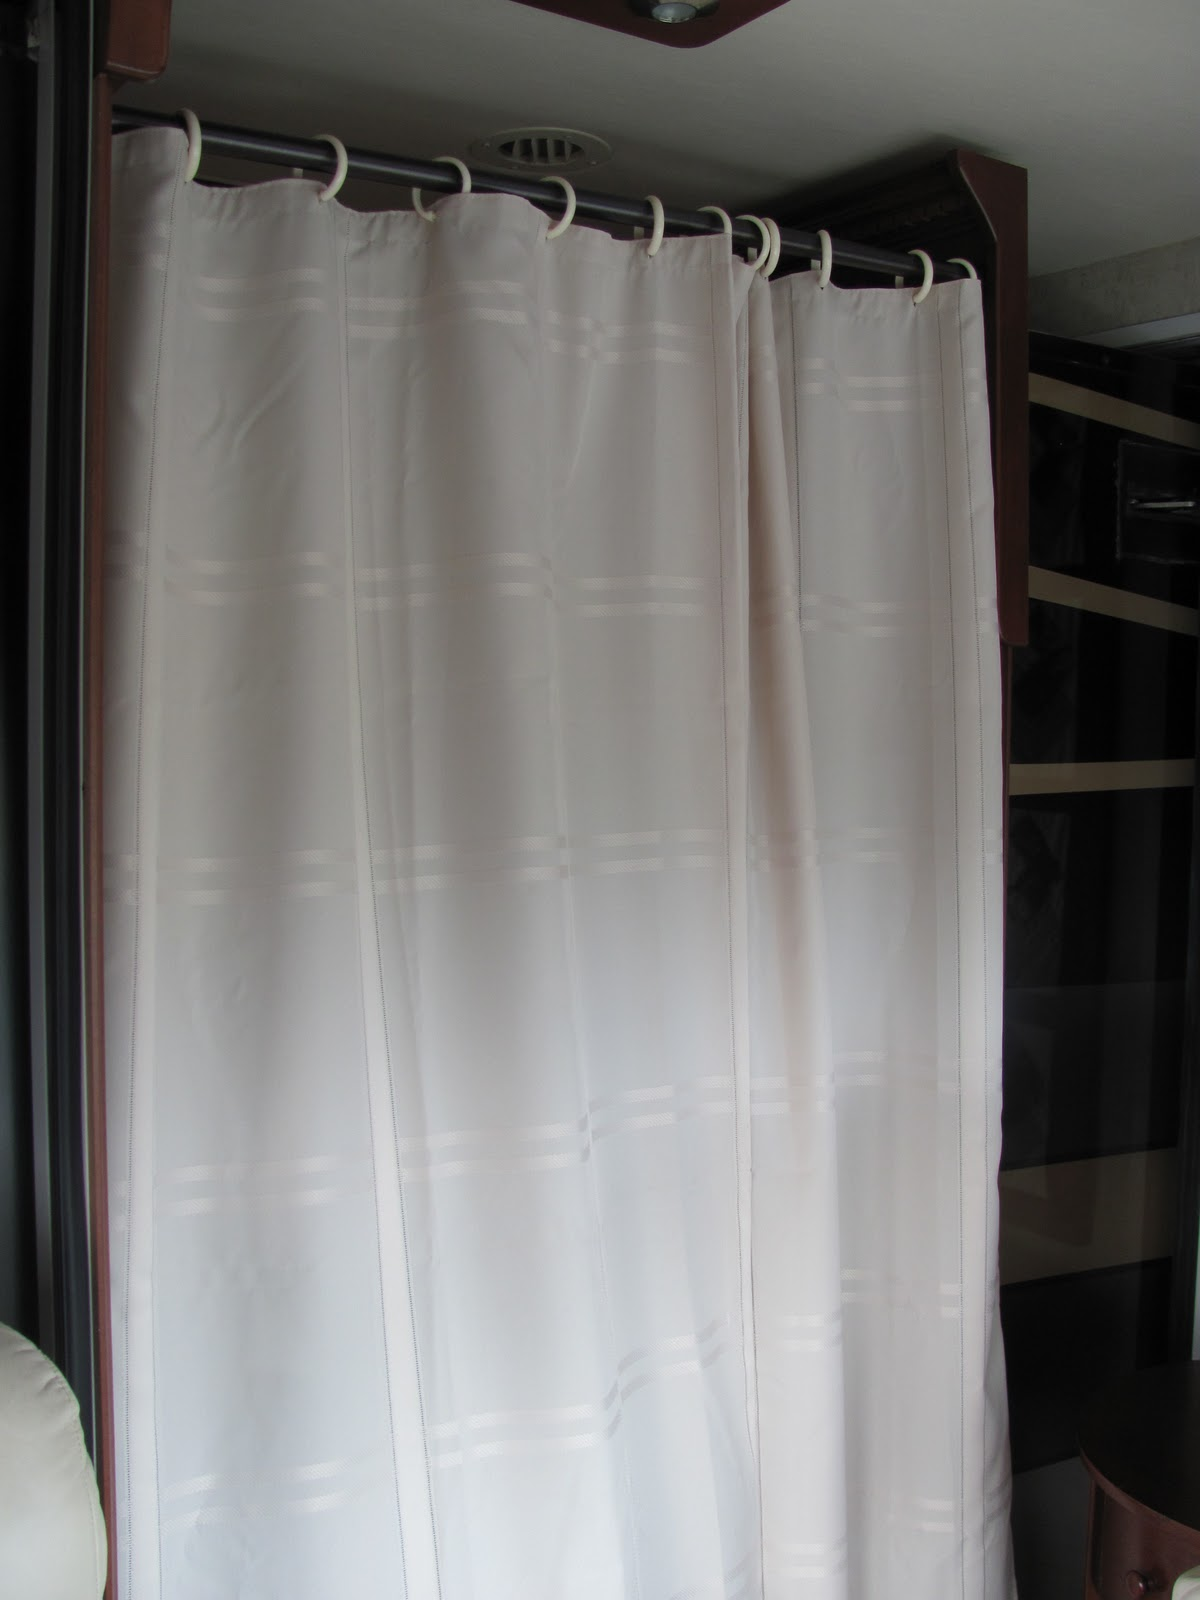 Most Expensive Shower Curtain